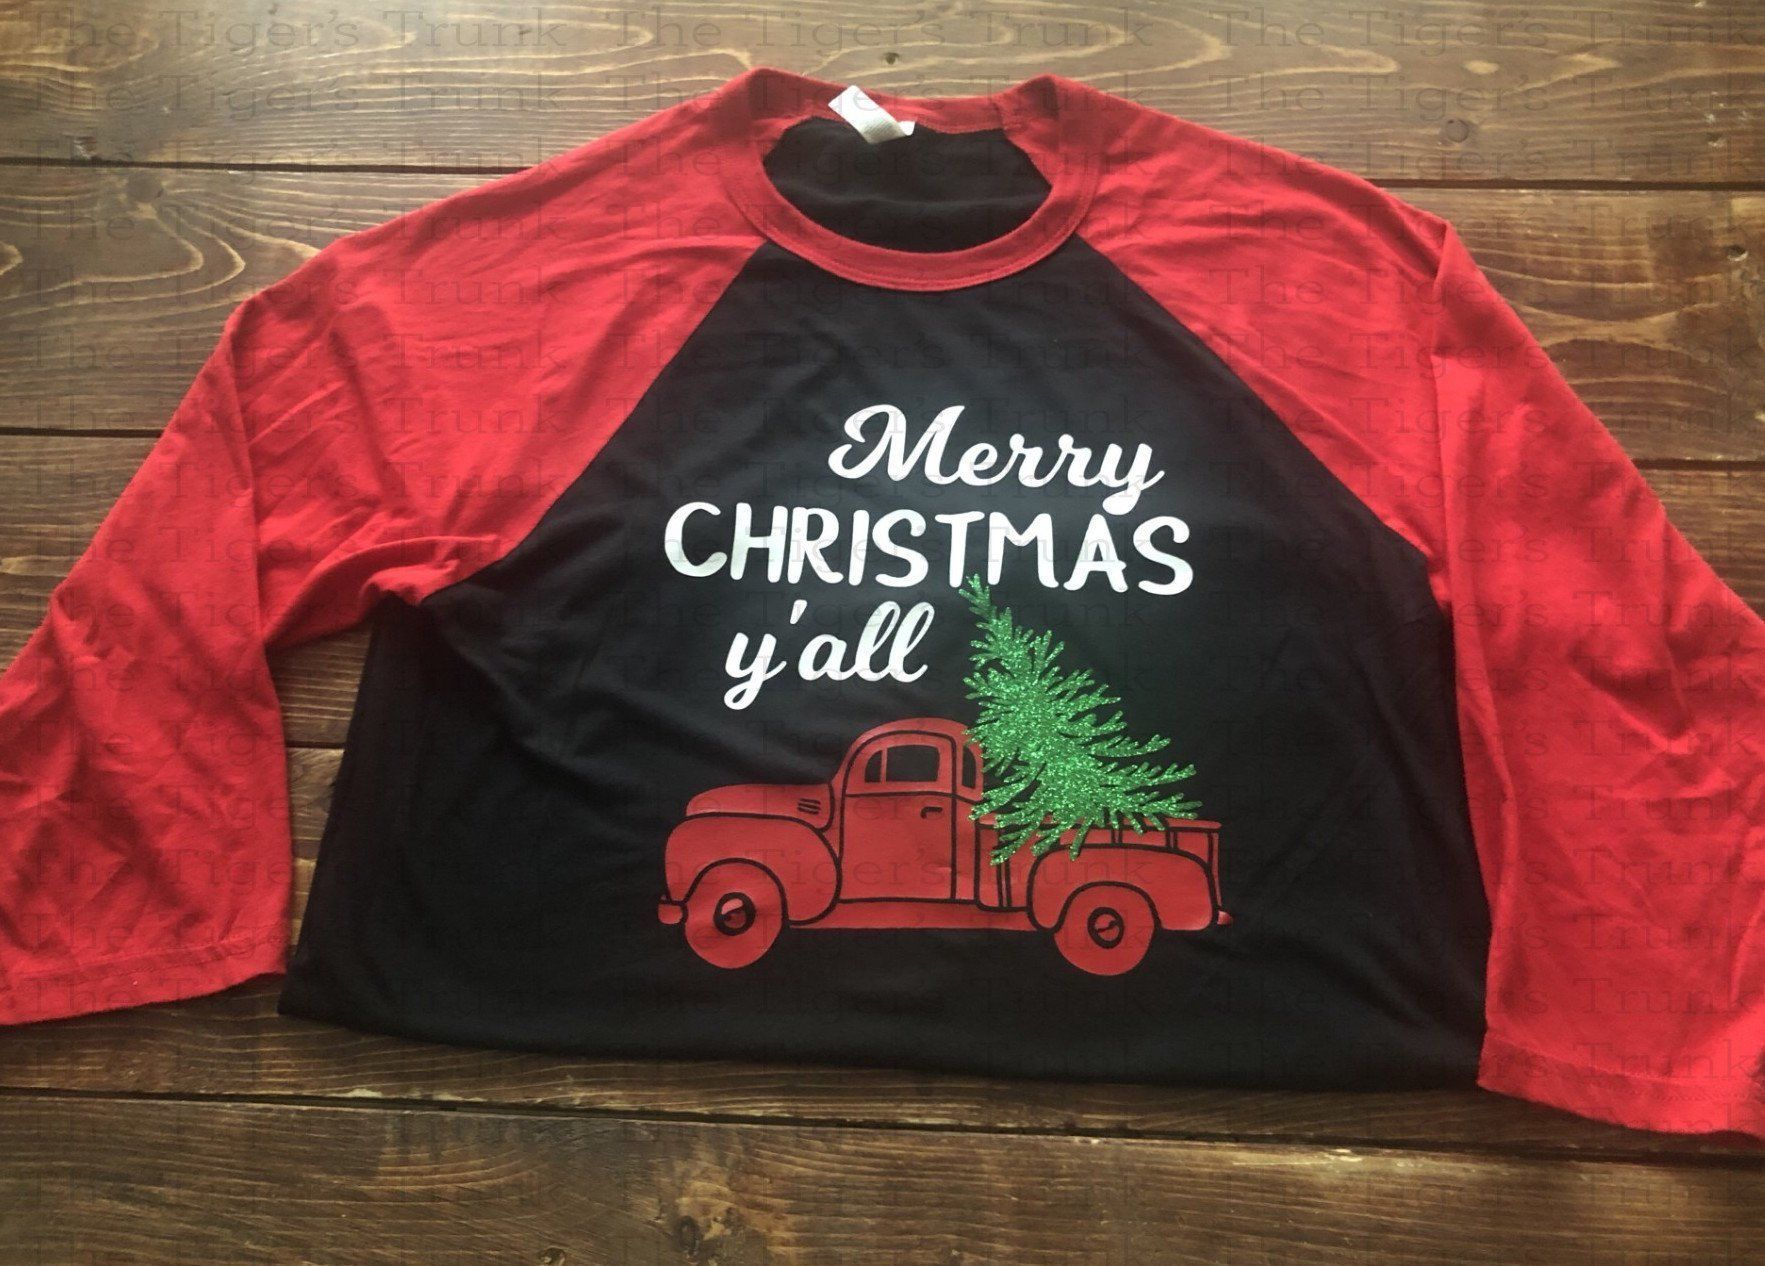 Christmas Gift Ideas m429 Personalized Christmas Shirt Funny Holiday Shirt Christmas Shirt For Girl The Elf Made Me Do It